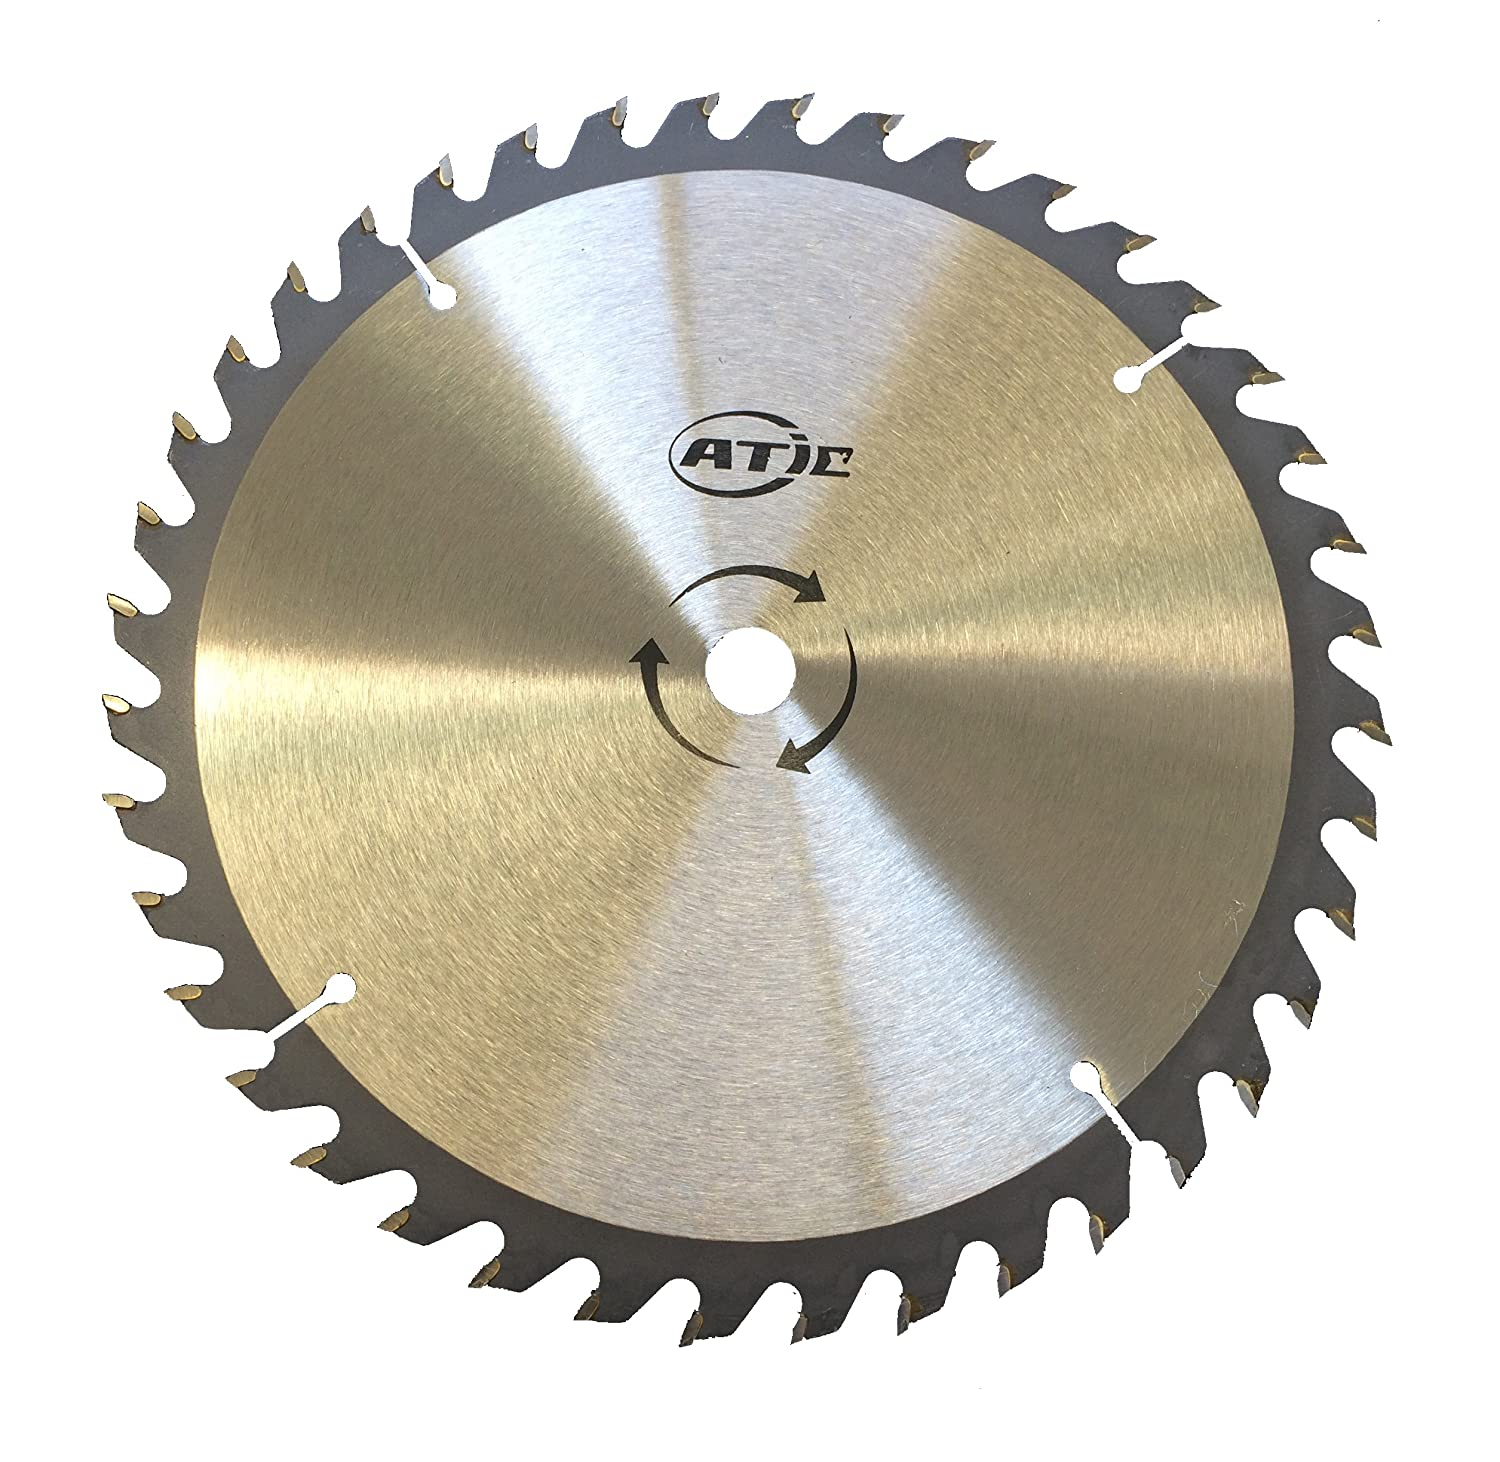 9 40 tooth carbide tip general purpose wood cutting circular saw 9 40 tooth carbide tip general purpose wood cutting circular saw blade with 58 arbor amazon greentooth Image collections